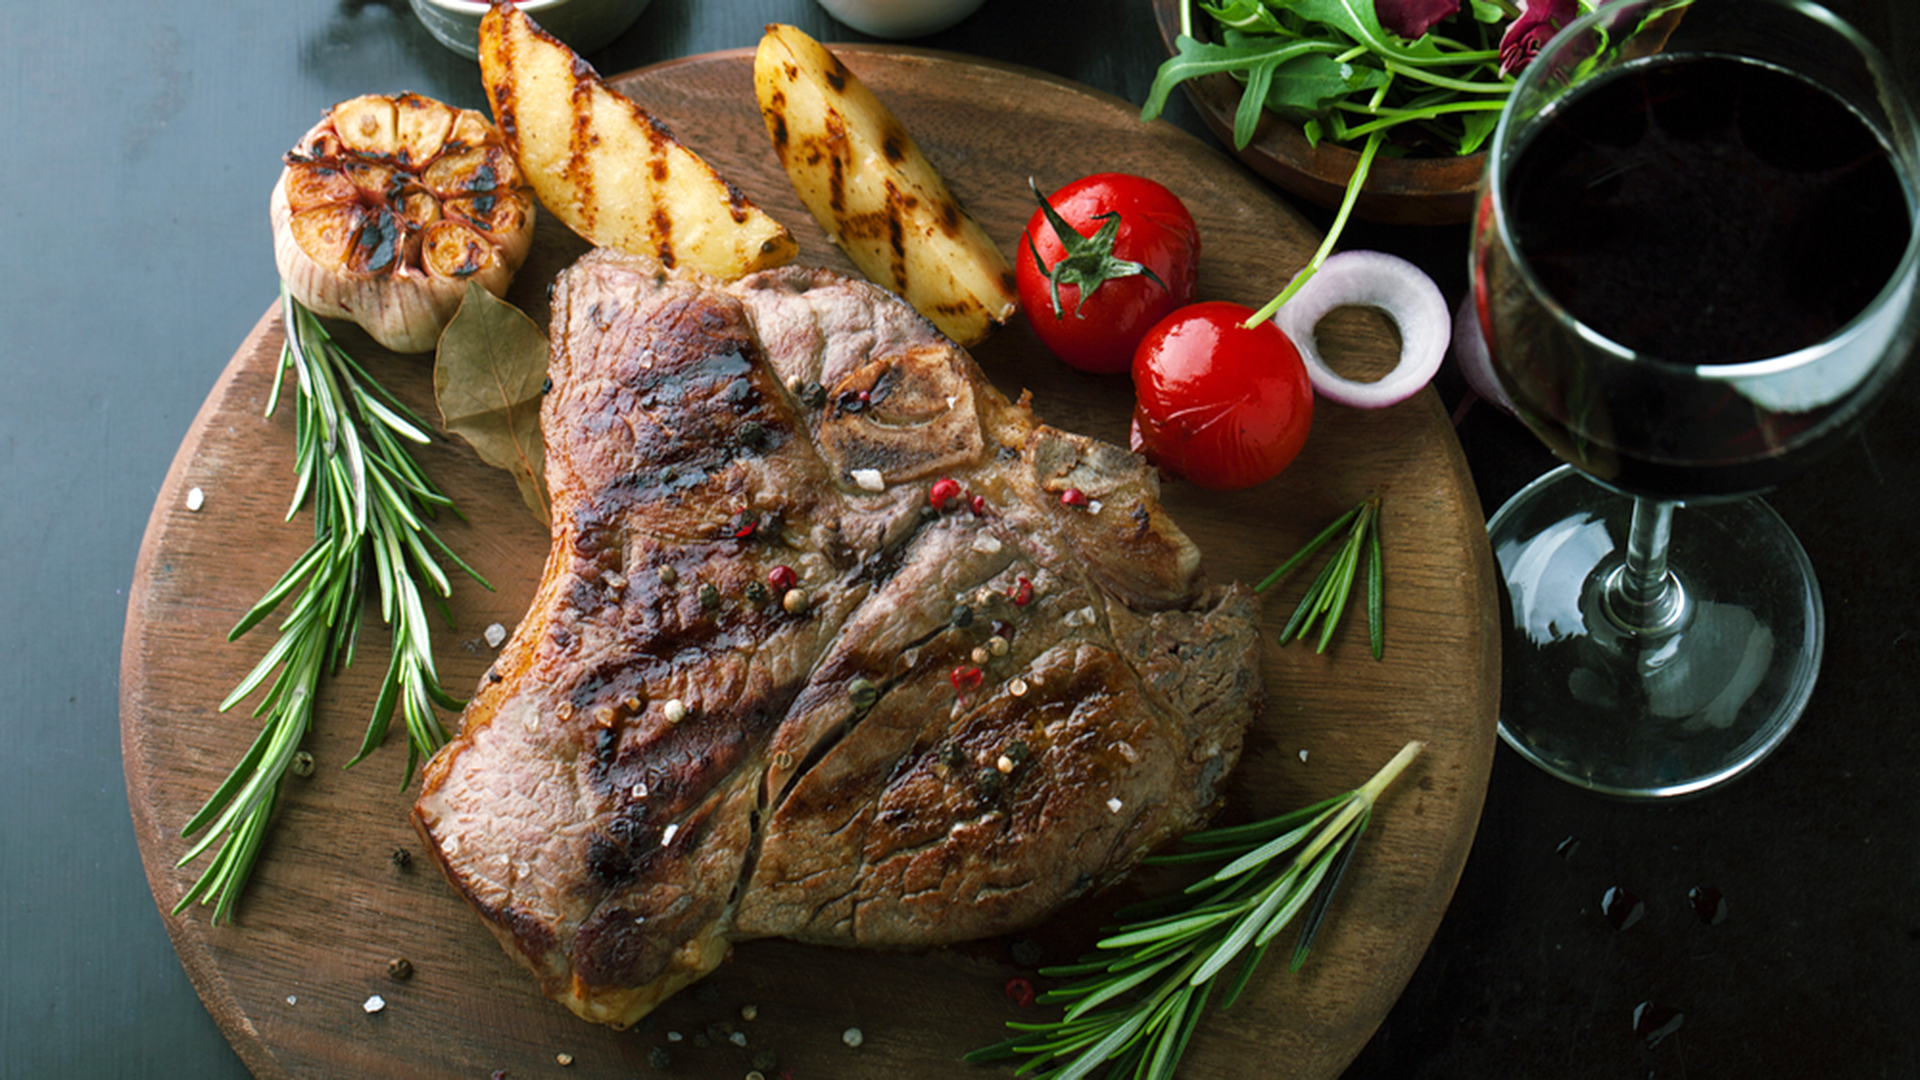 Red meat and potatoes can be part of a healthy diet - TODAY.com